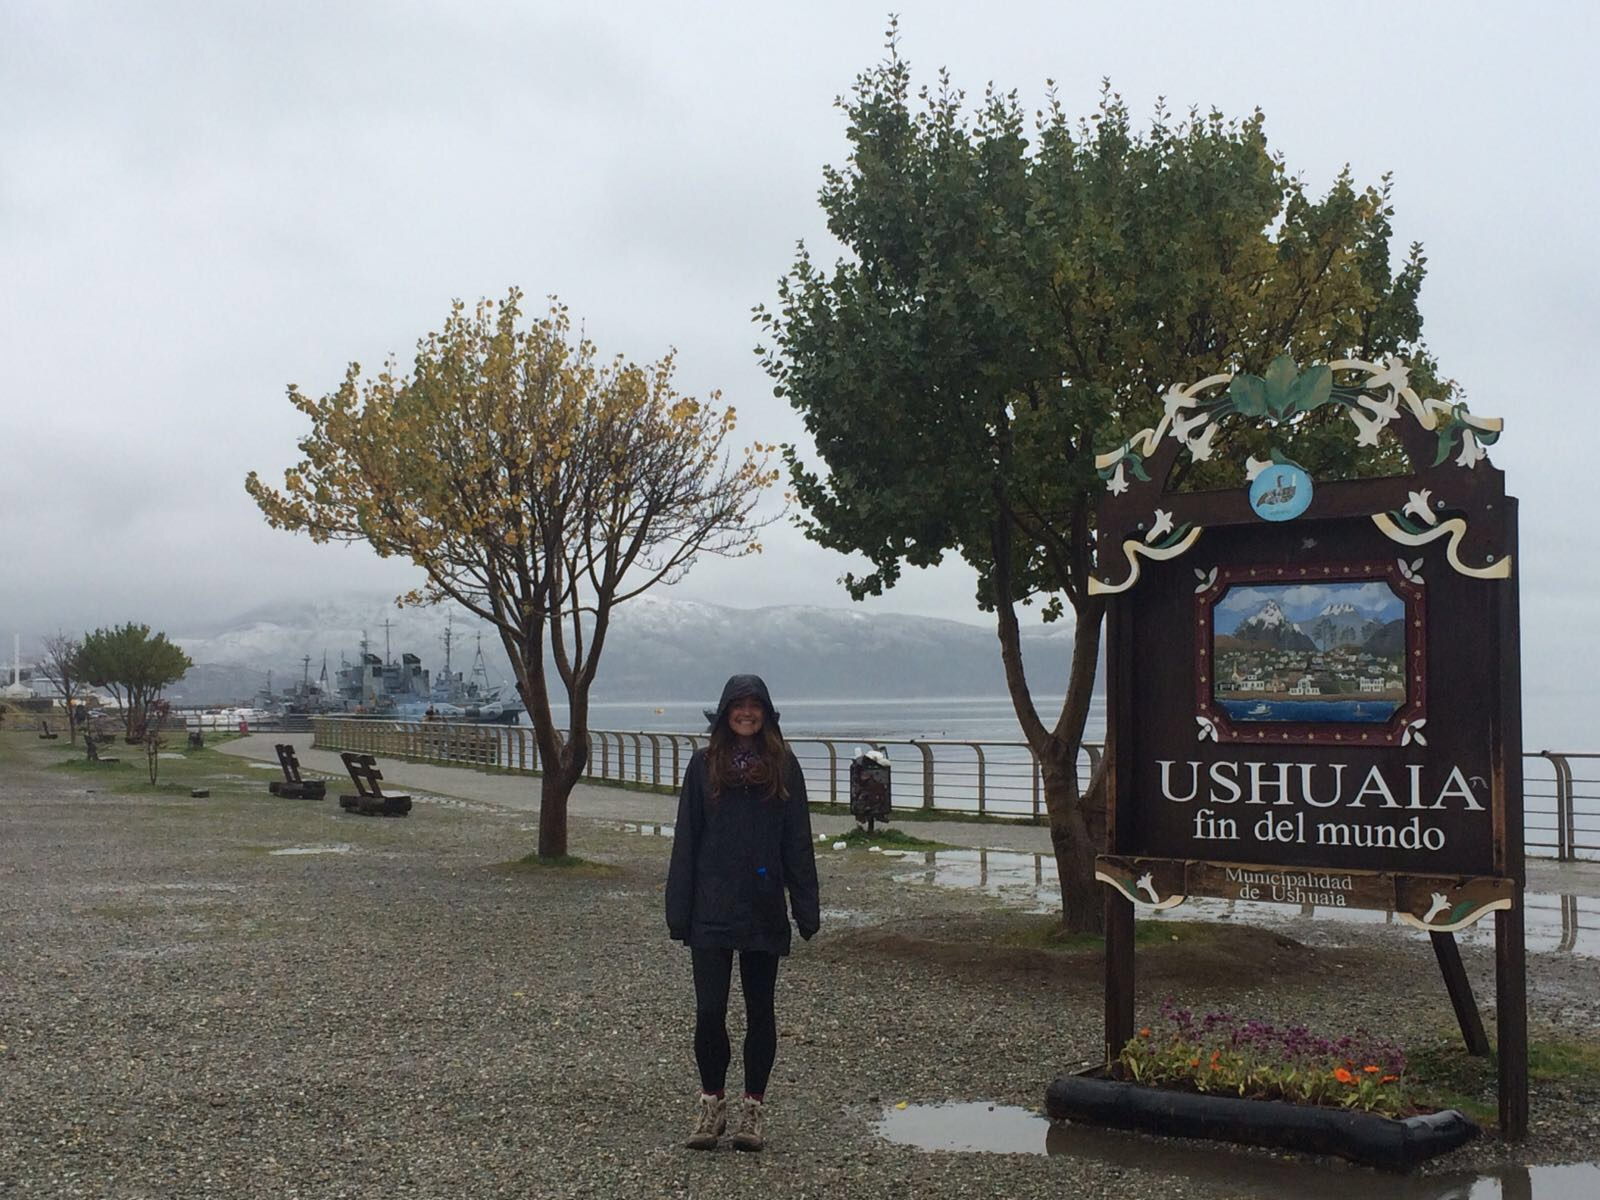 Our journey to the end of the world: travel though Patagonia (Mar del Plata,  Puerto Madryn and Ushuaia)